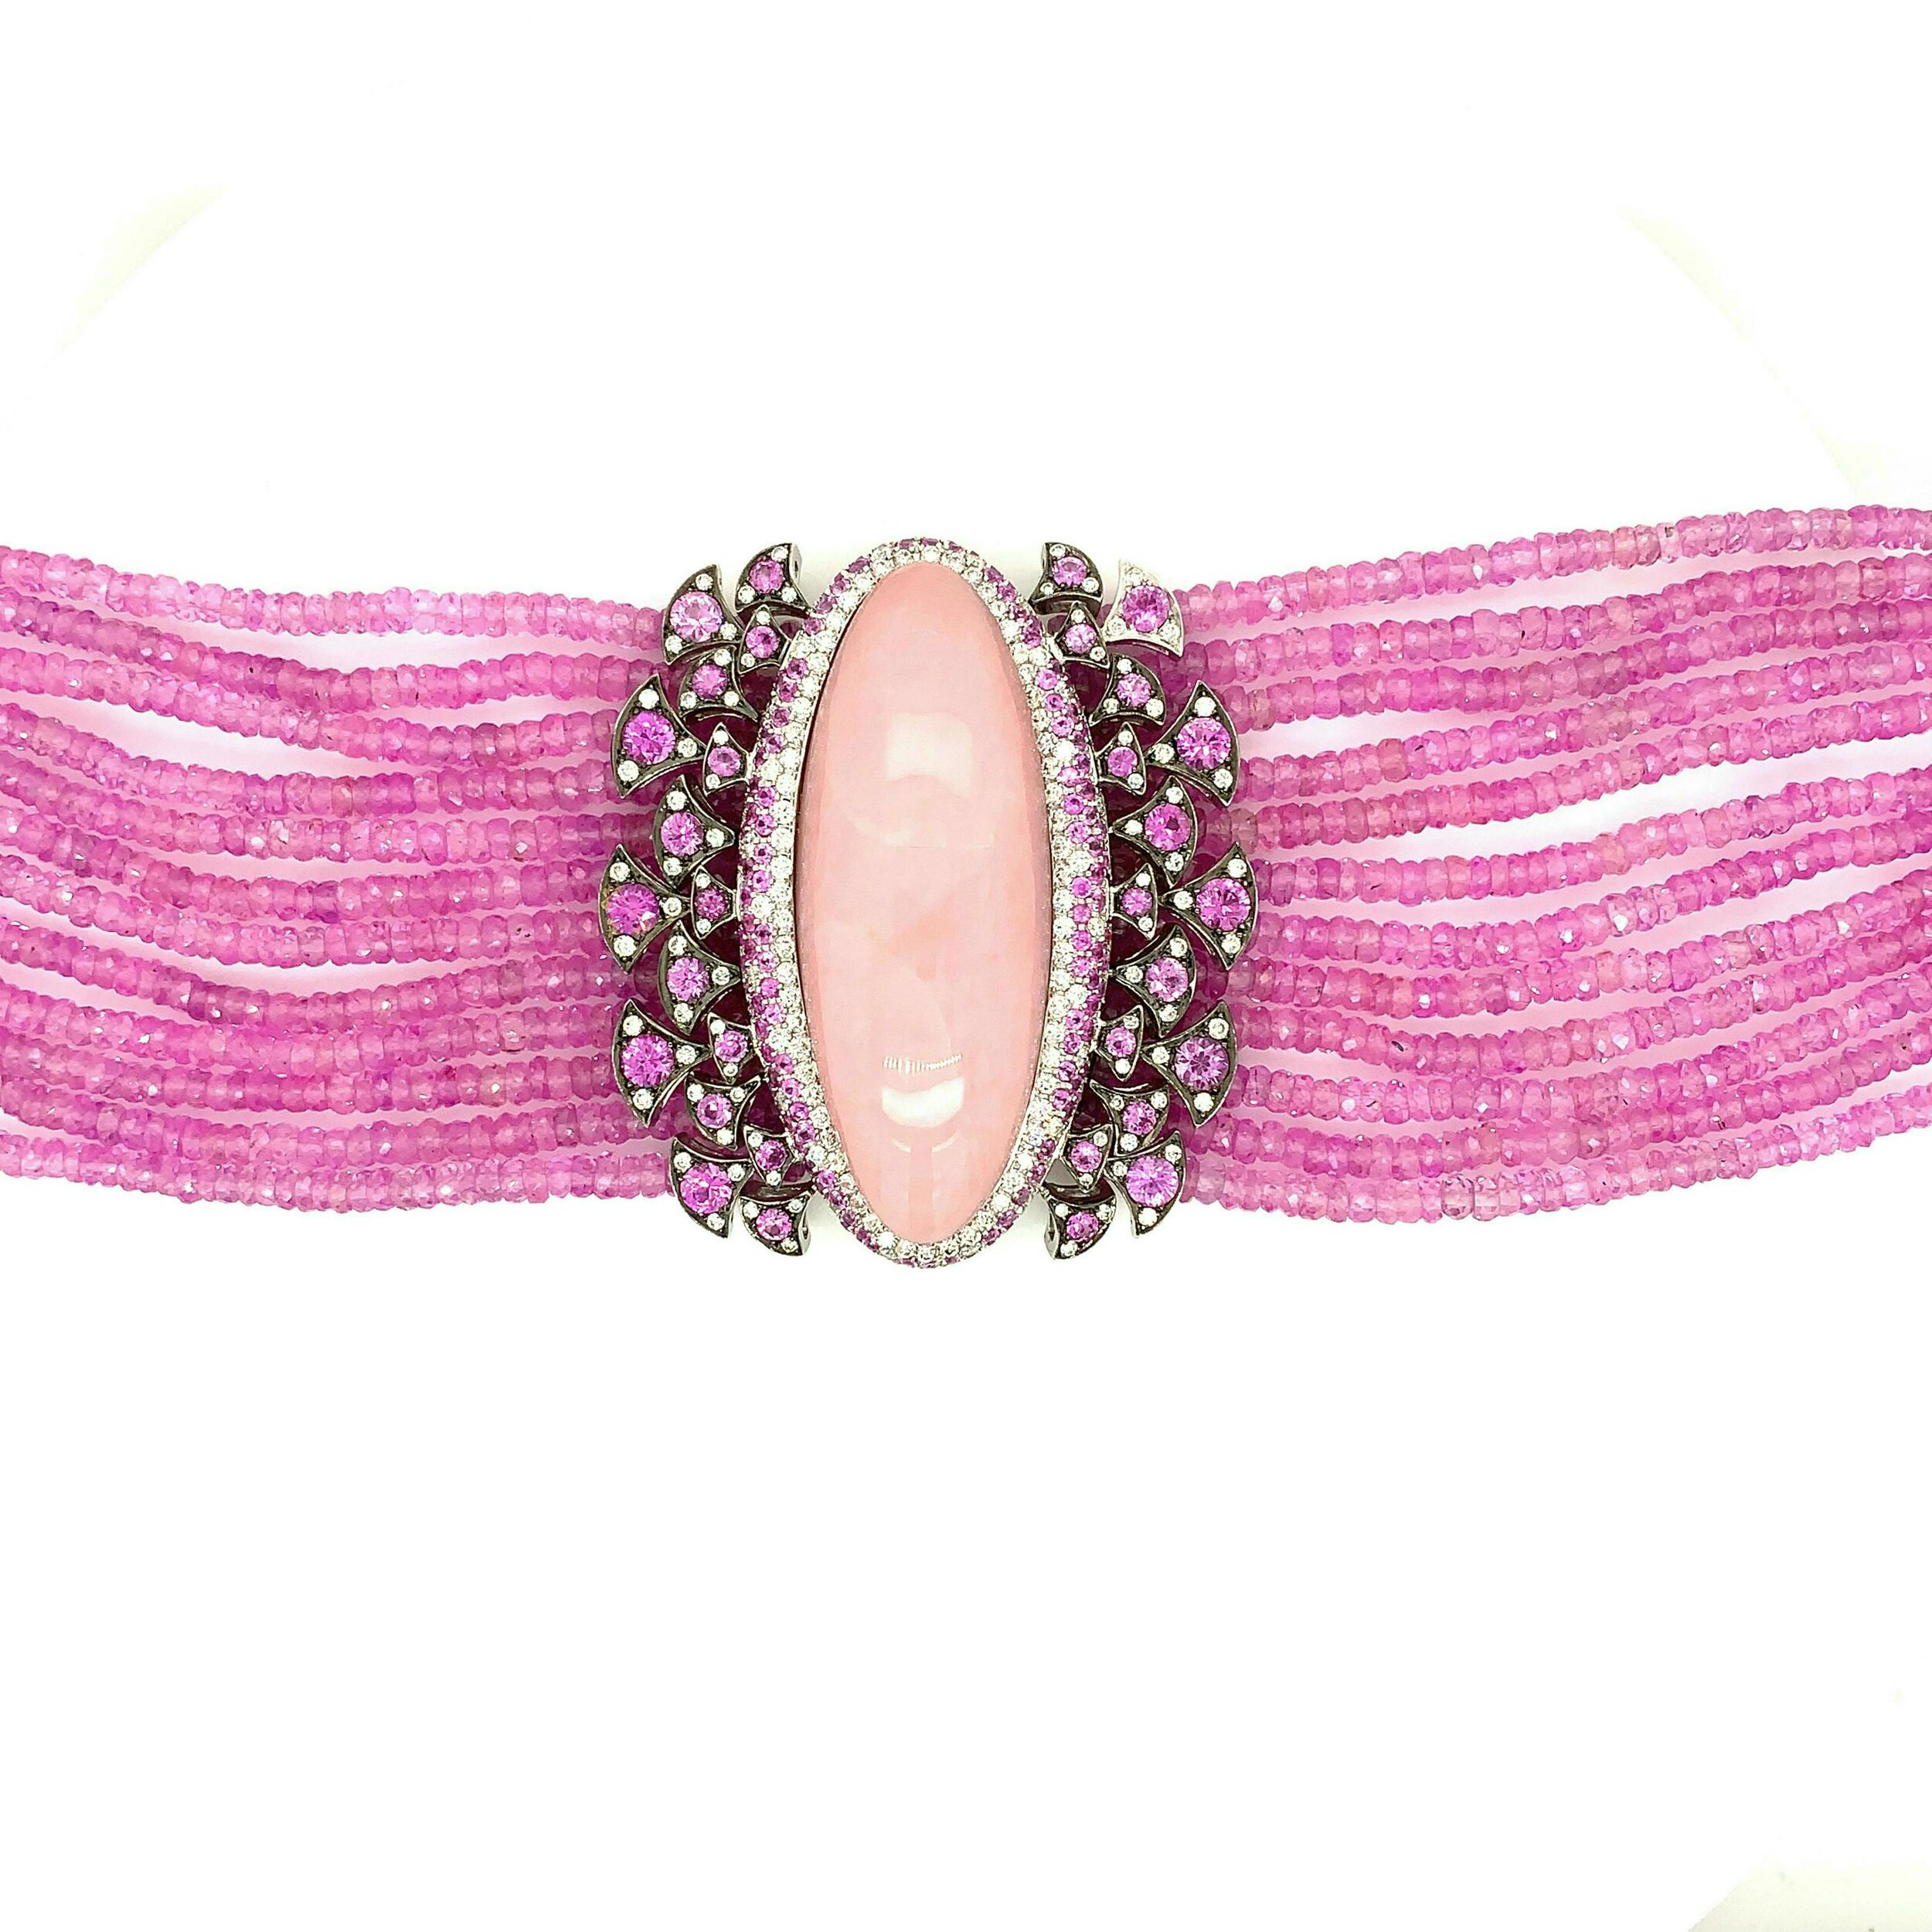 188.2cts Faceted Pink Sapphire Bead Bracelet with 36.07 Pink Opal & Diamond Center   Est. US$ 4,000-6,000